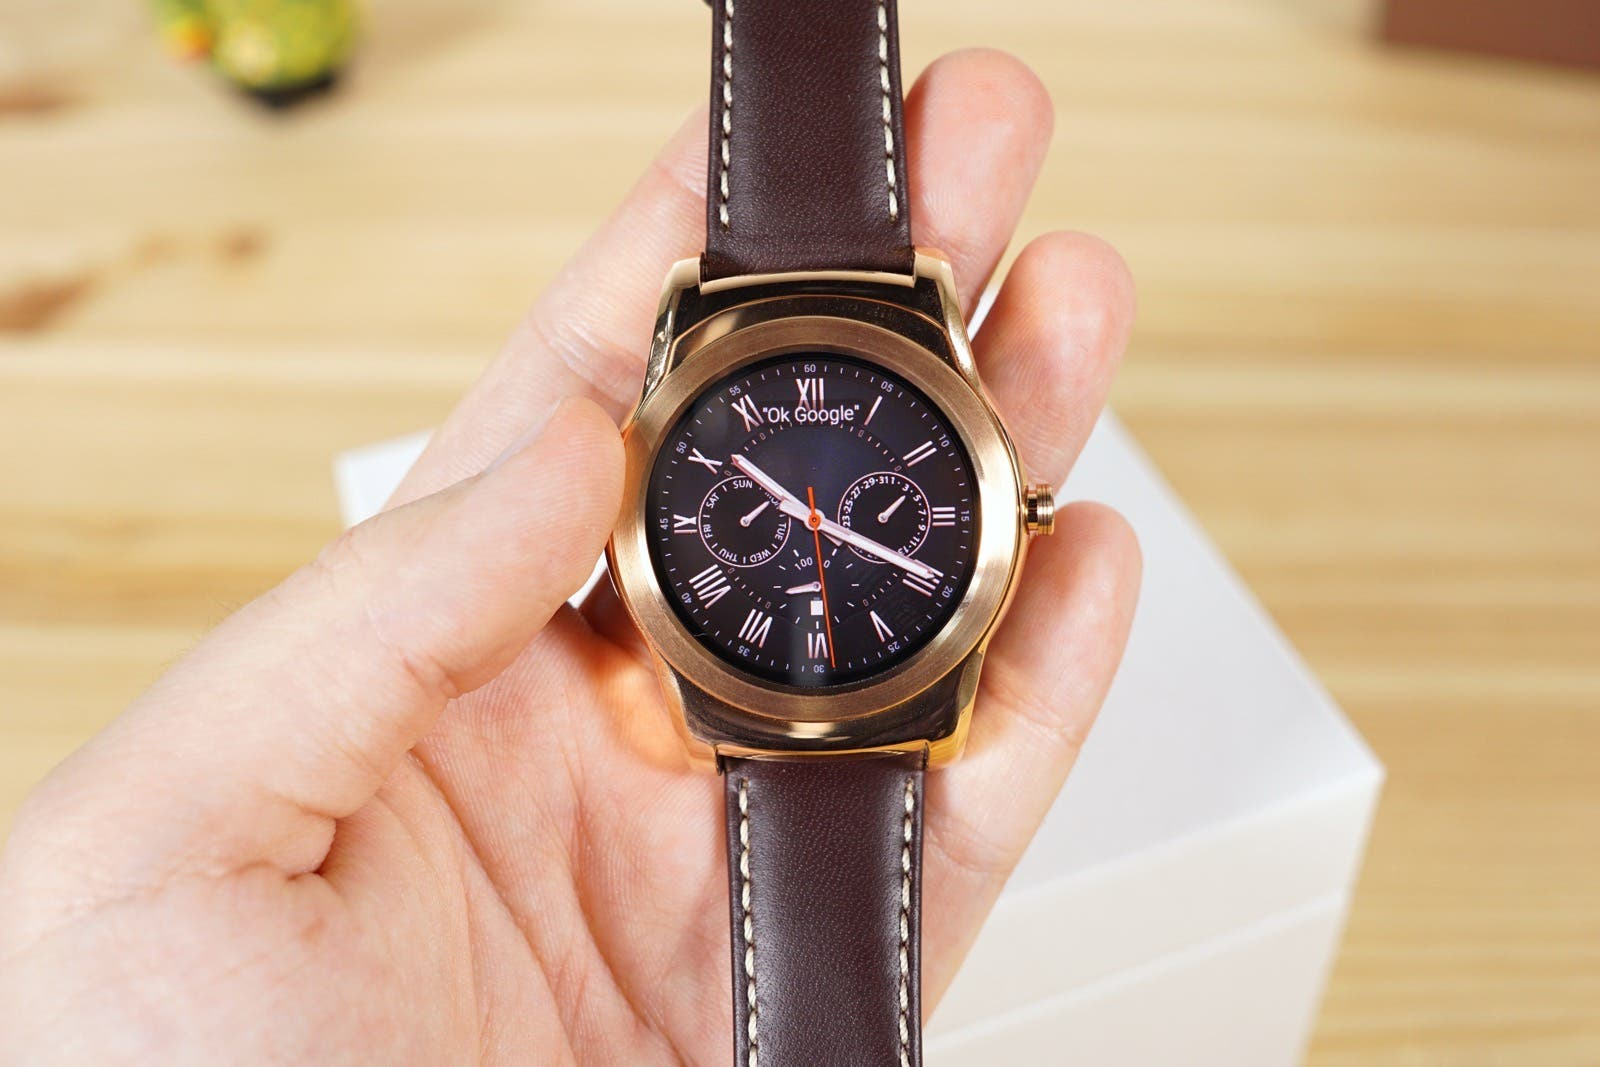 LG Watch Urbane in der Hand Displayauflösung